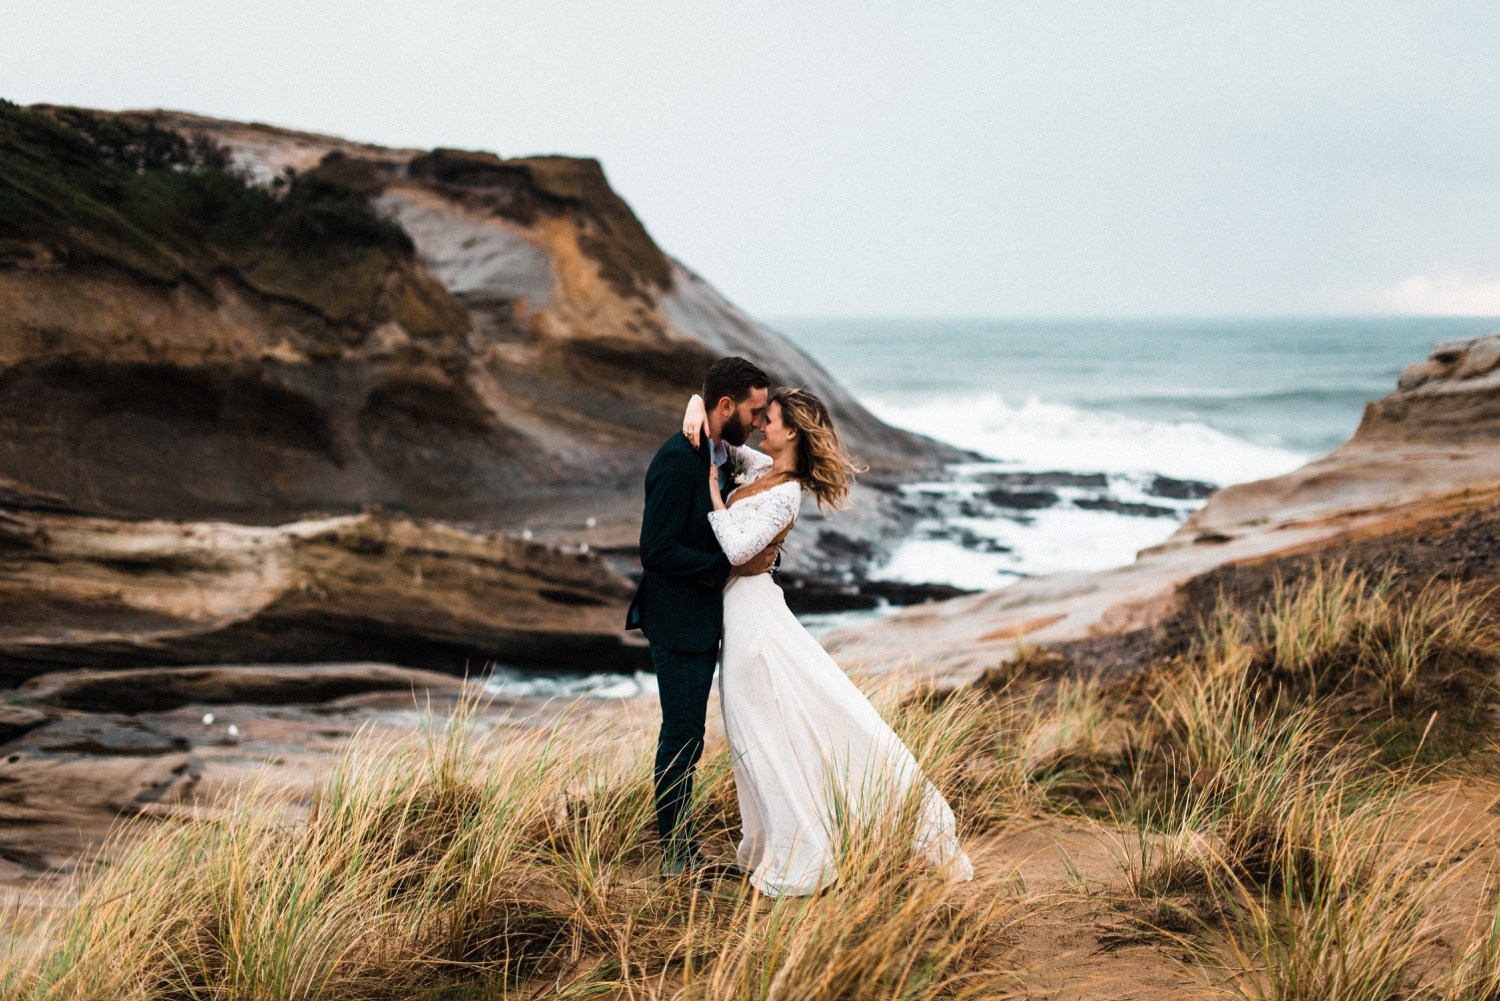 Oregon_Coast_Elopement_Wedding_The_Foxes_Photography_111-2.jpg